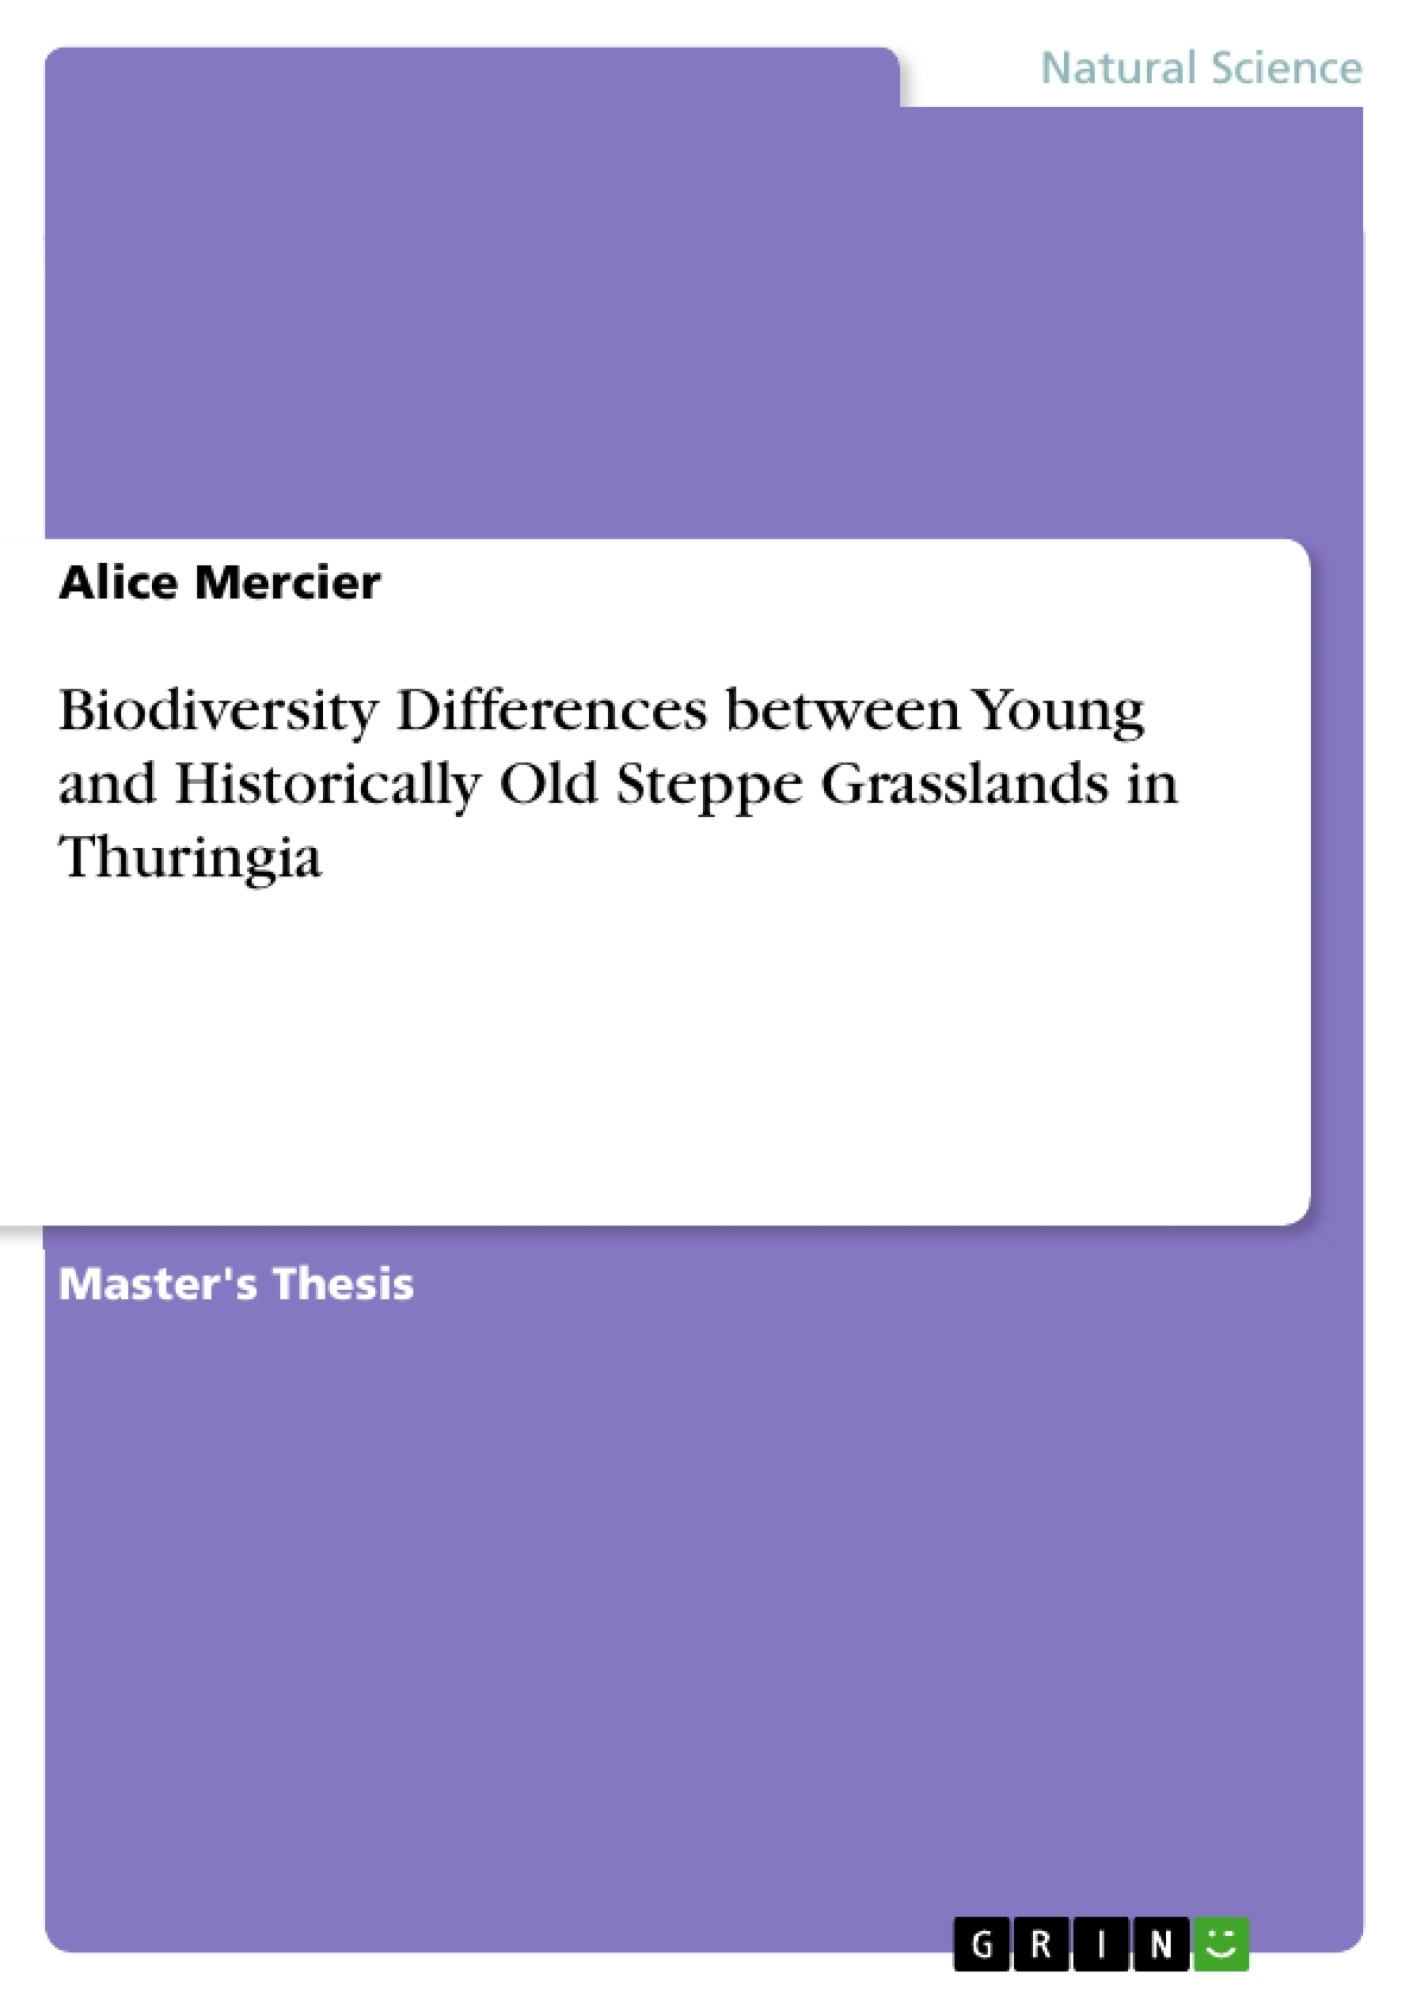 Title: Biodiversity Differences between Young and Historically Old Steppe Grasslands in Thuringia